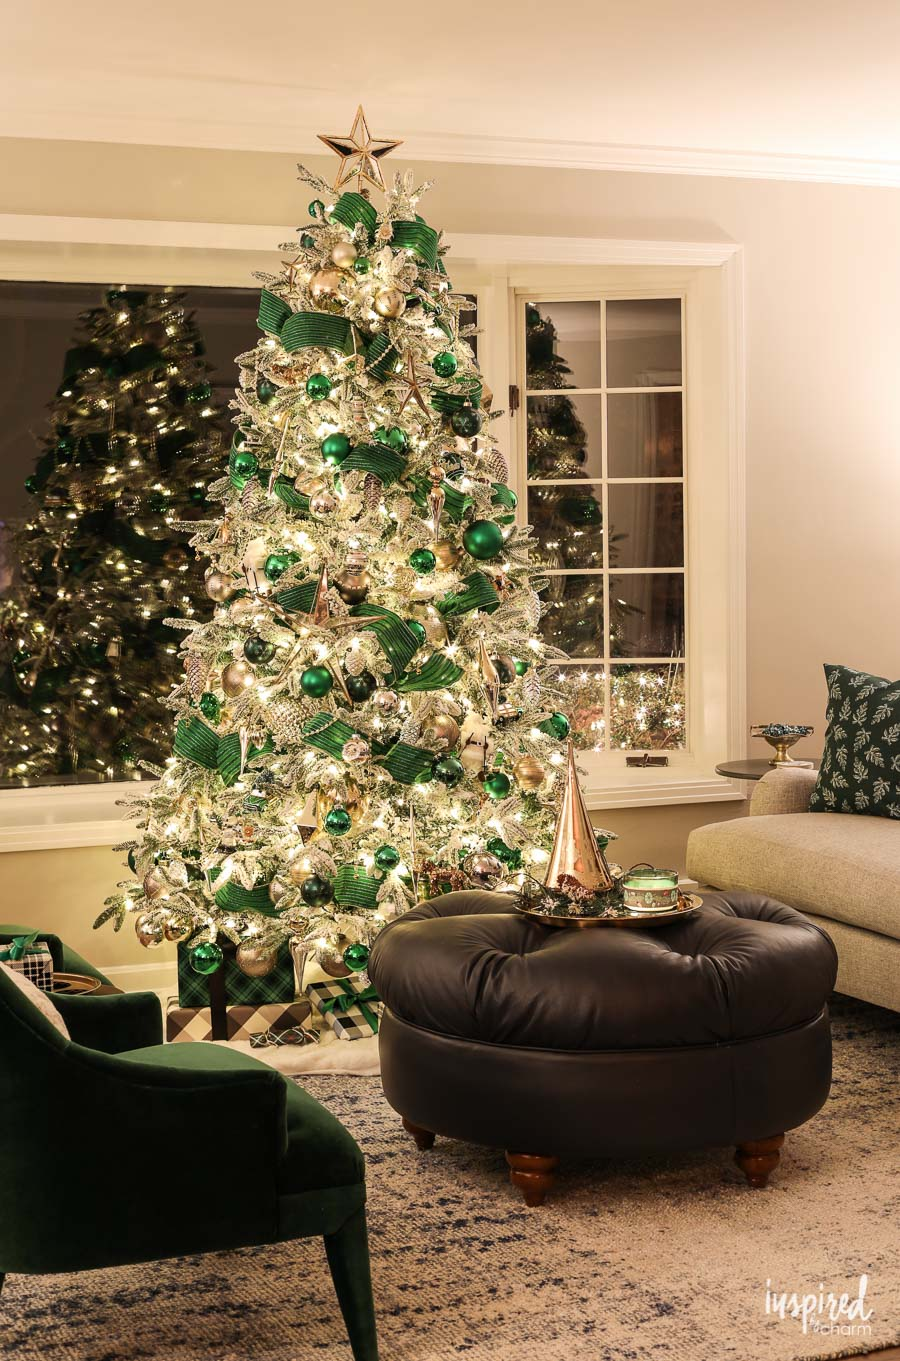 My favorite Christmas Trees of 2018! - Inspired by Charm - Home with Holliday